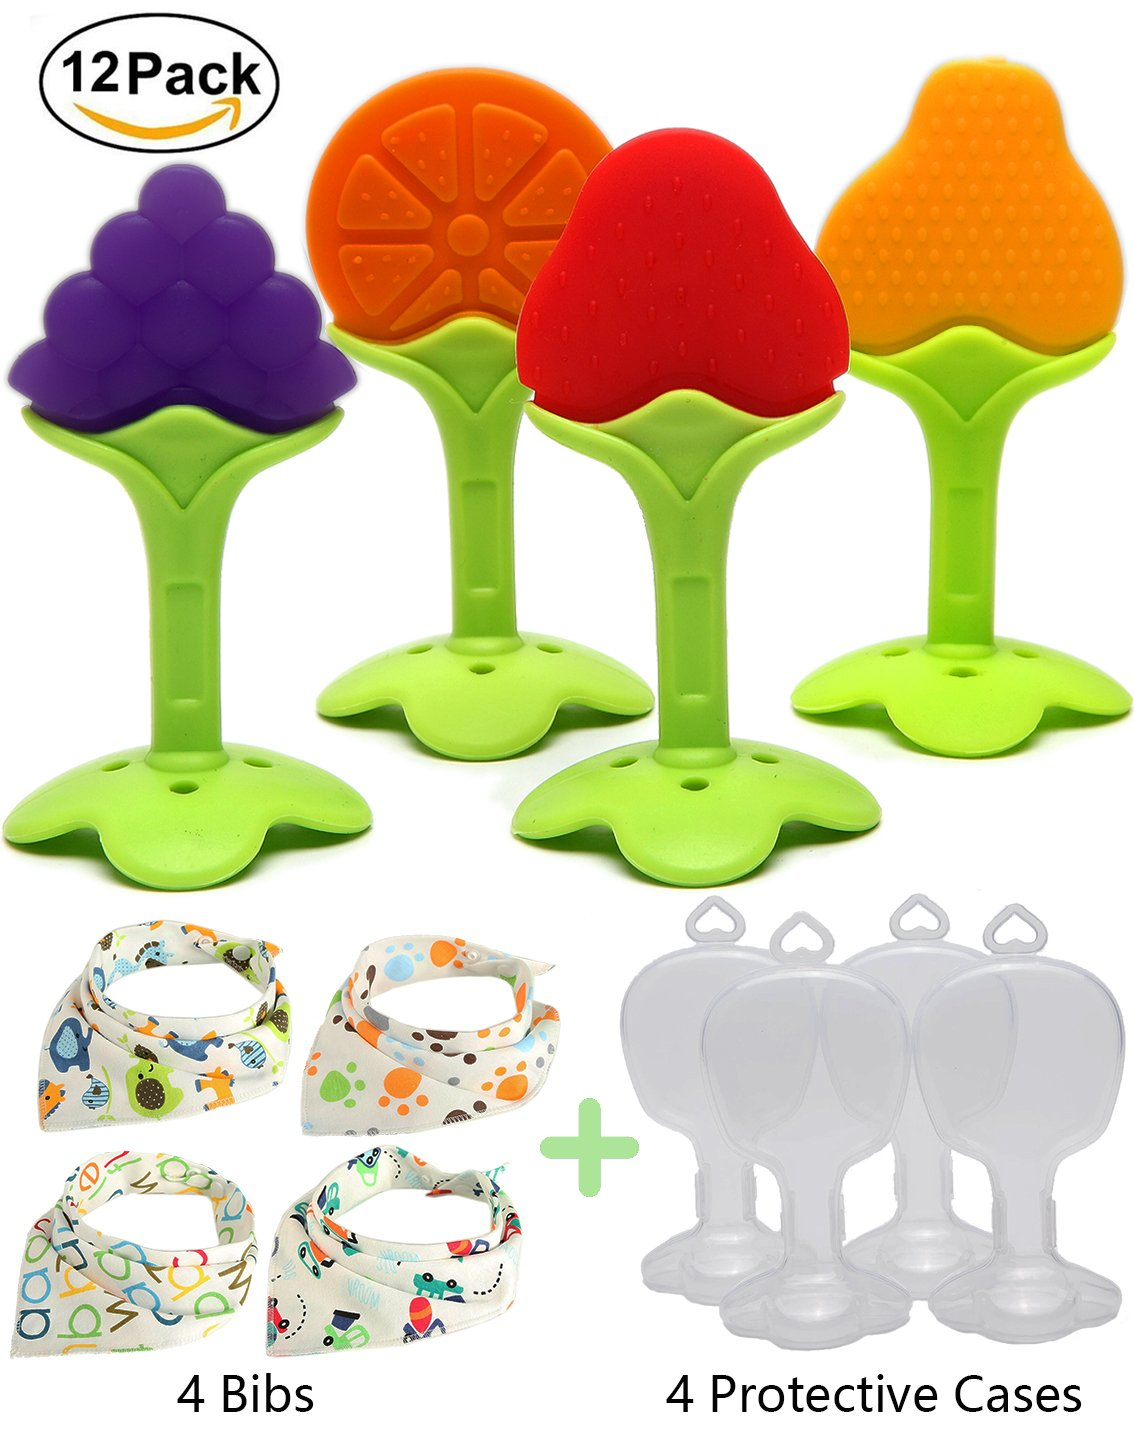 Kidsky Baby Teething Toys, Soft Silicone Natural FDA Approved BPA Free Fruit Teethers Set with Baby Bandana Drool Bibs for Toddlers & Infants. (Pack of 12)